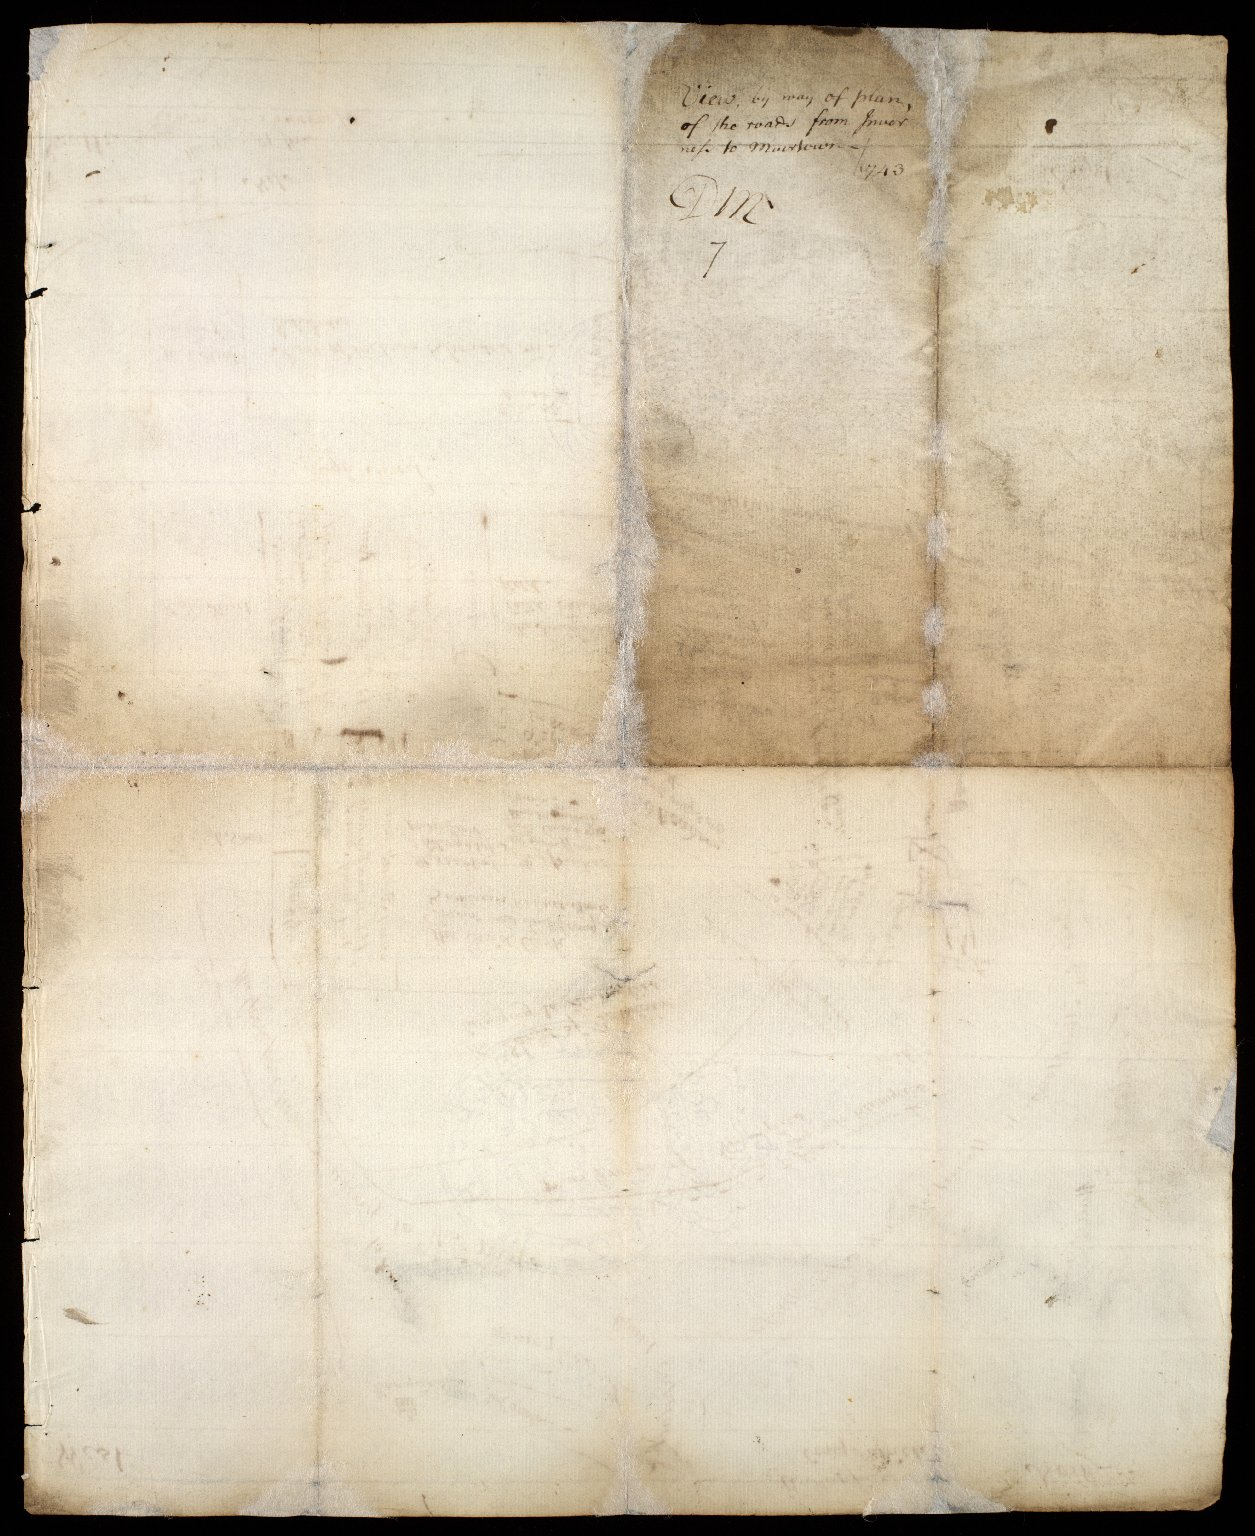 View by way of plan, of the roads from Inverness to Muirtown, 1743 [2 of 2]